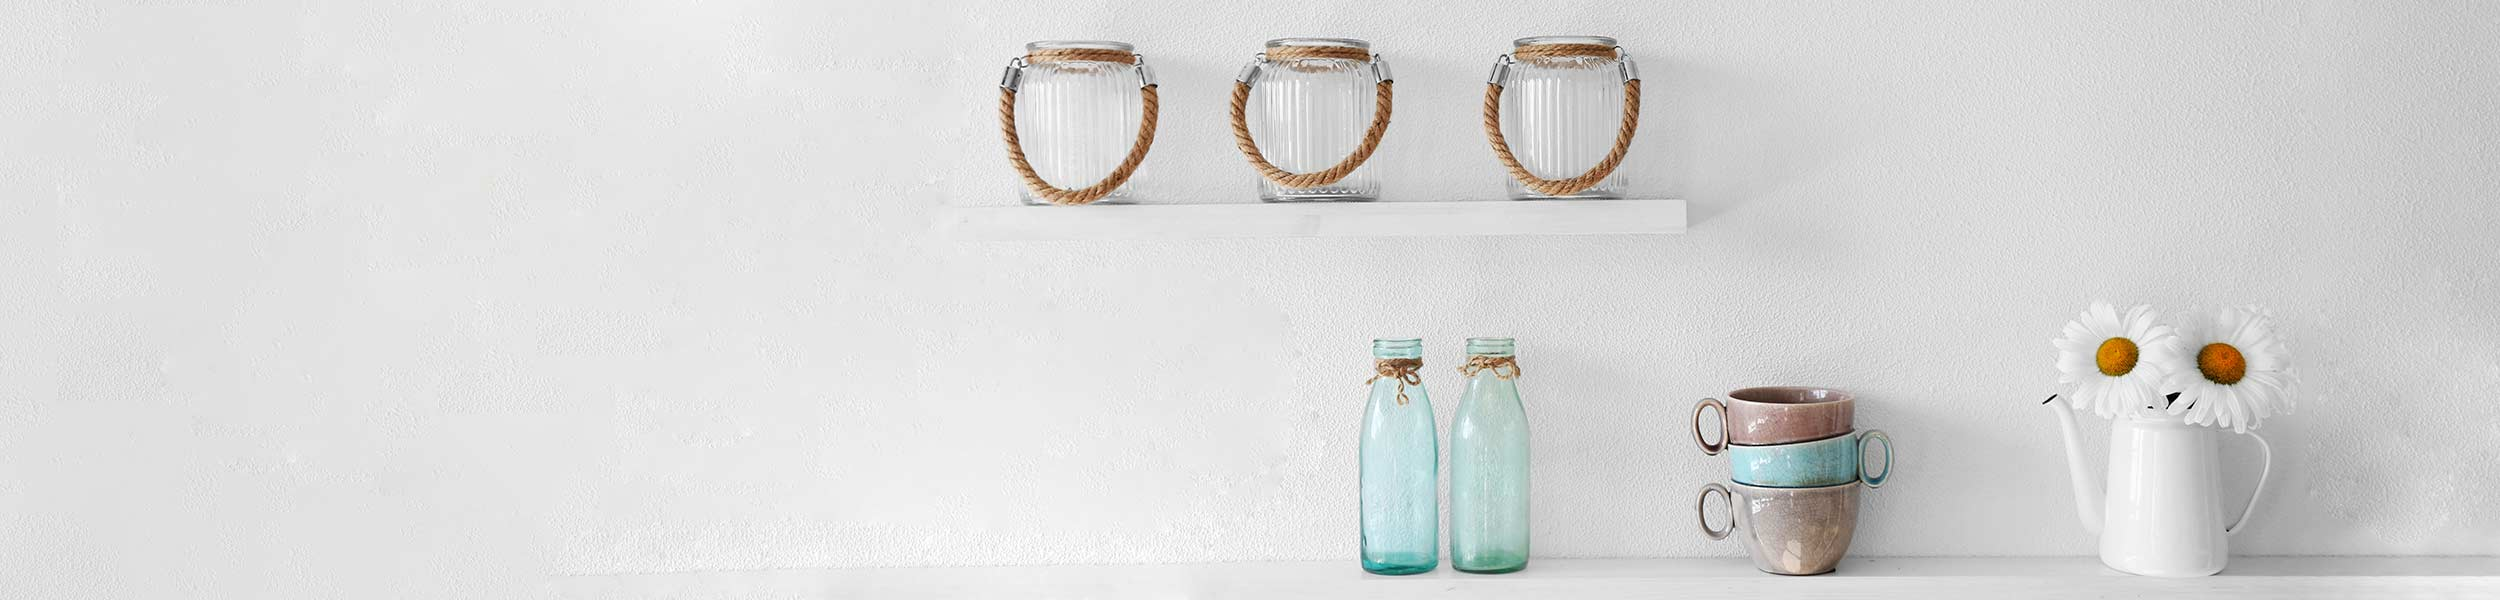 jars-on-shelf